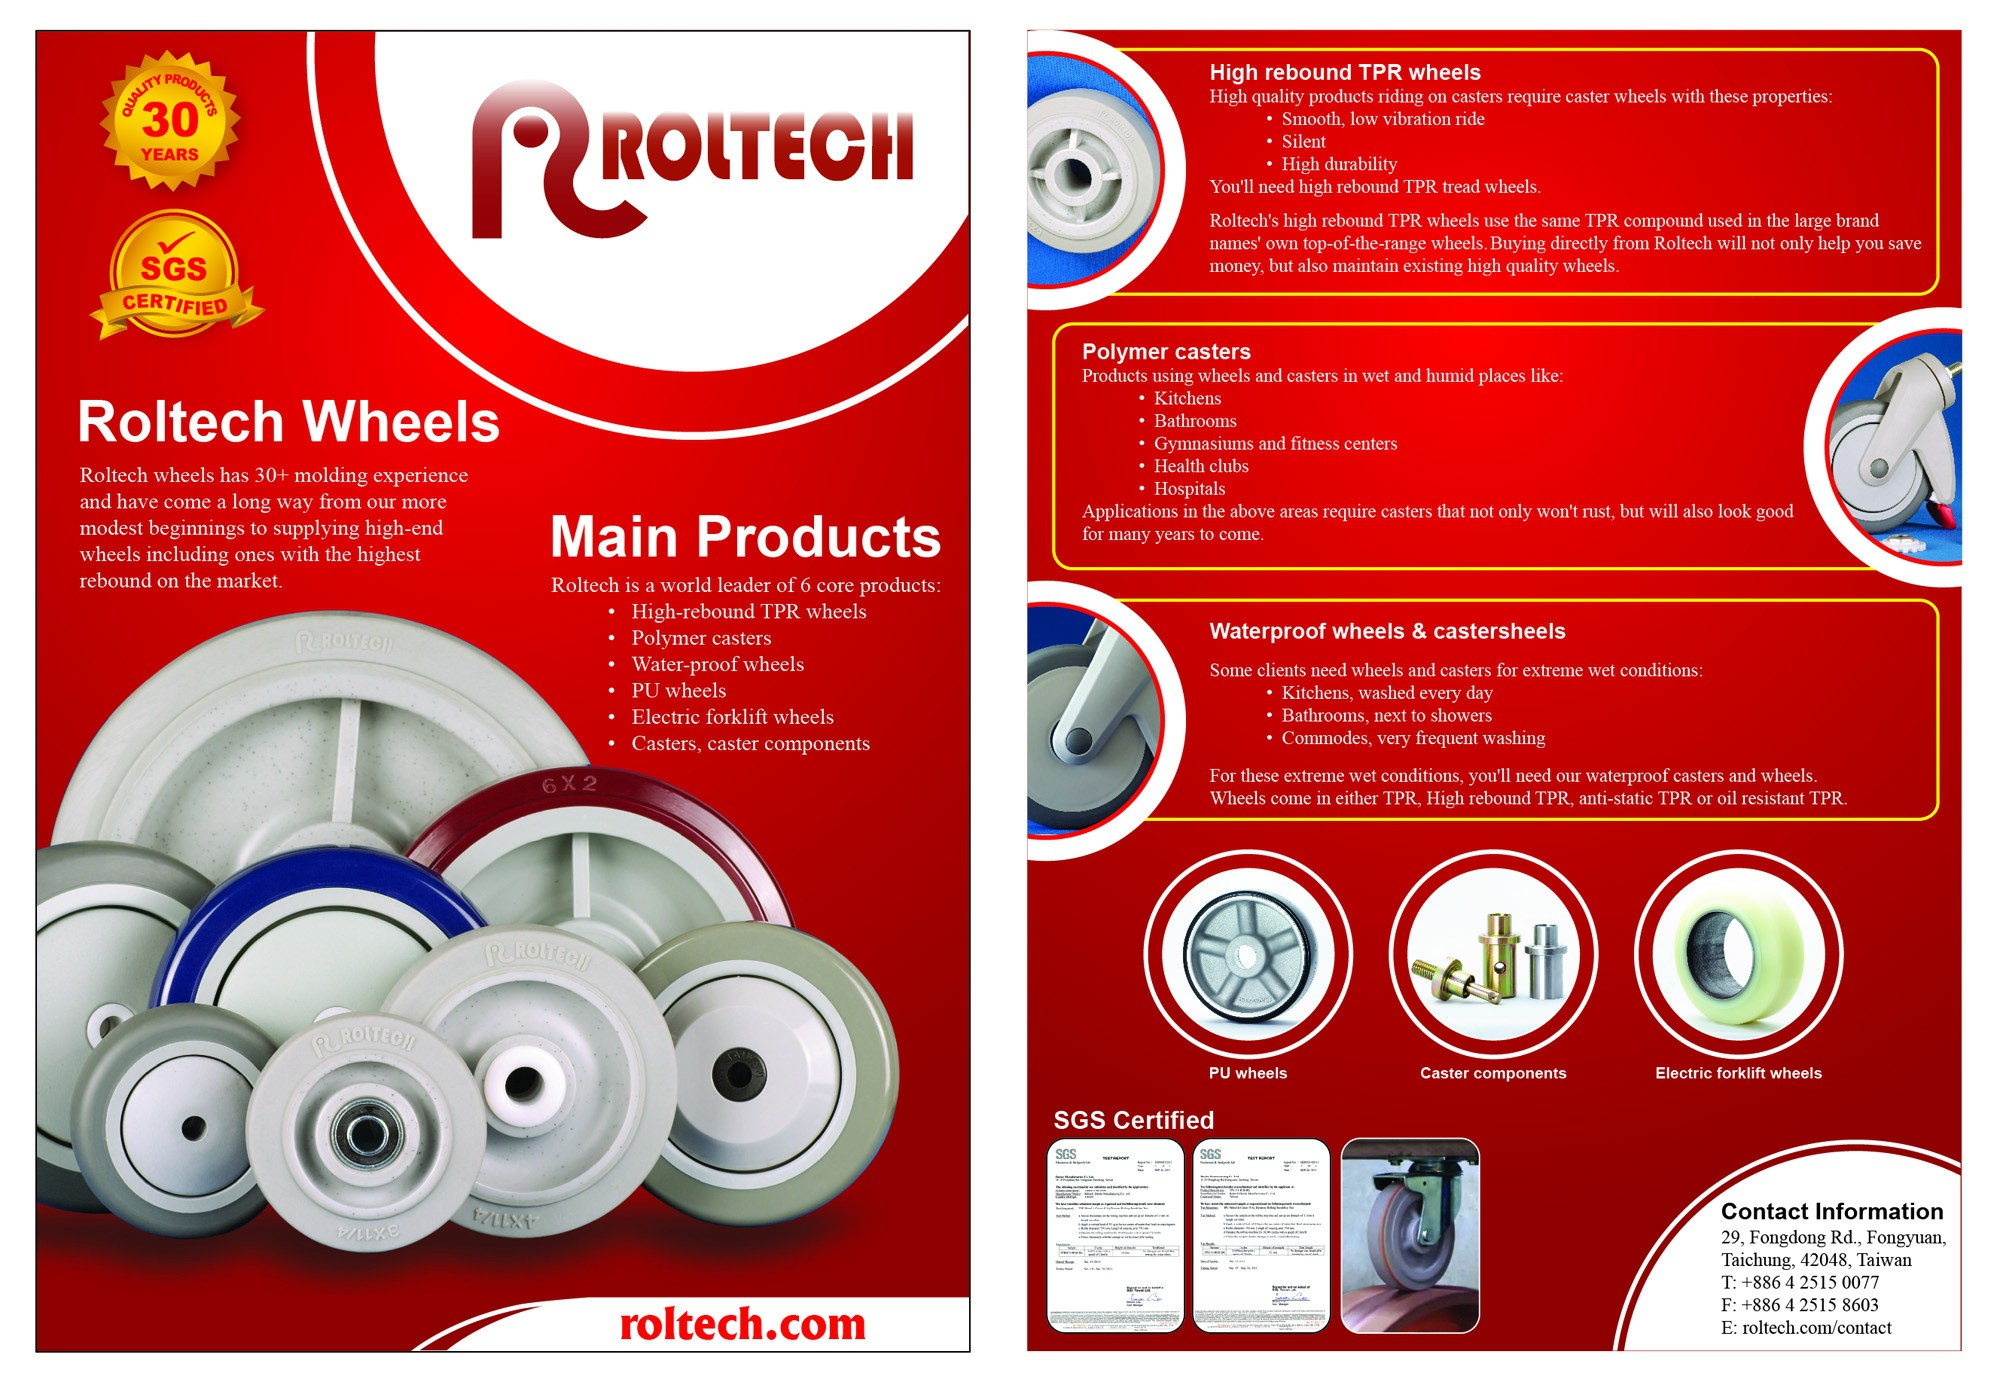 Create the next brochure design for Roltech